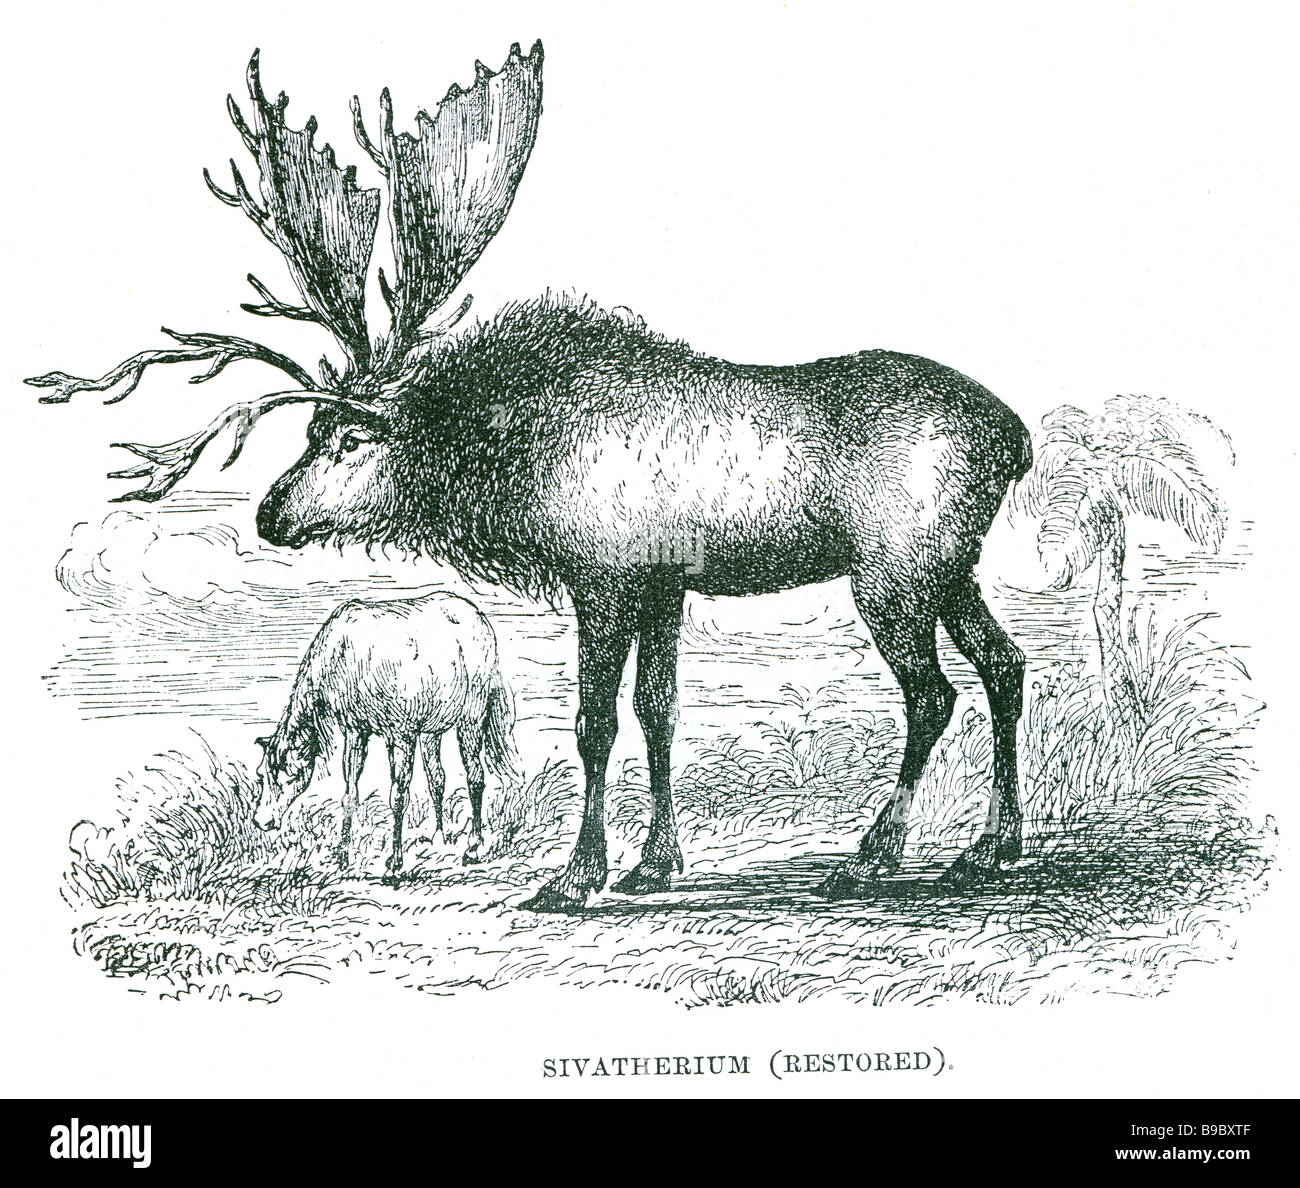 Sivatherium ('Shiva's beast)' is an extinct genus of giraffe that ranged throughout Africa to Southern - Stock Image